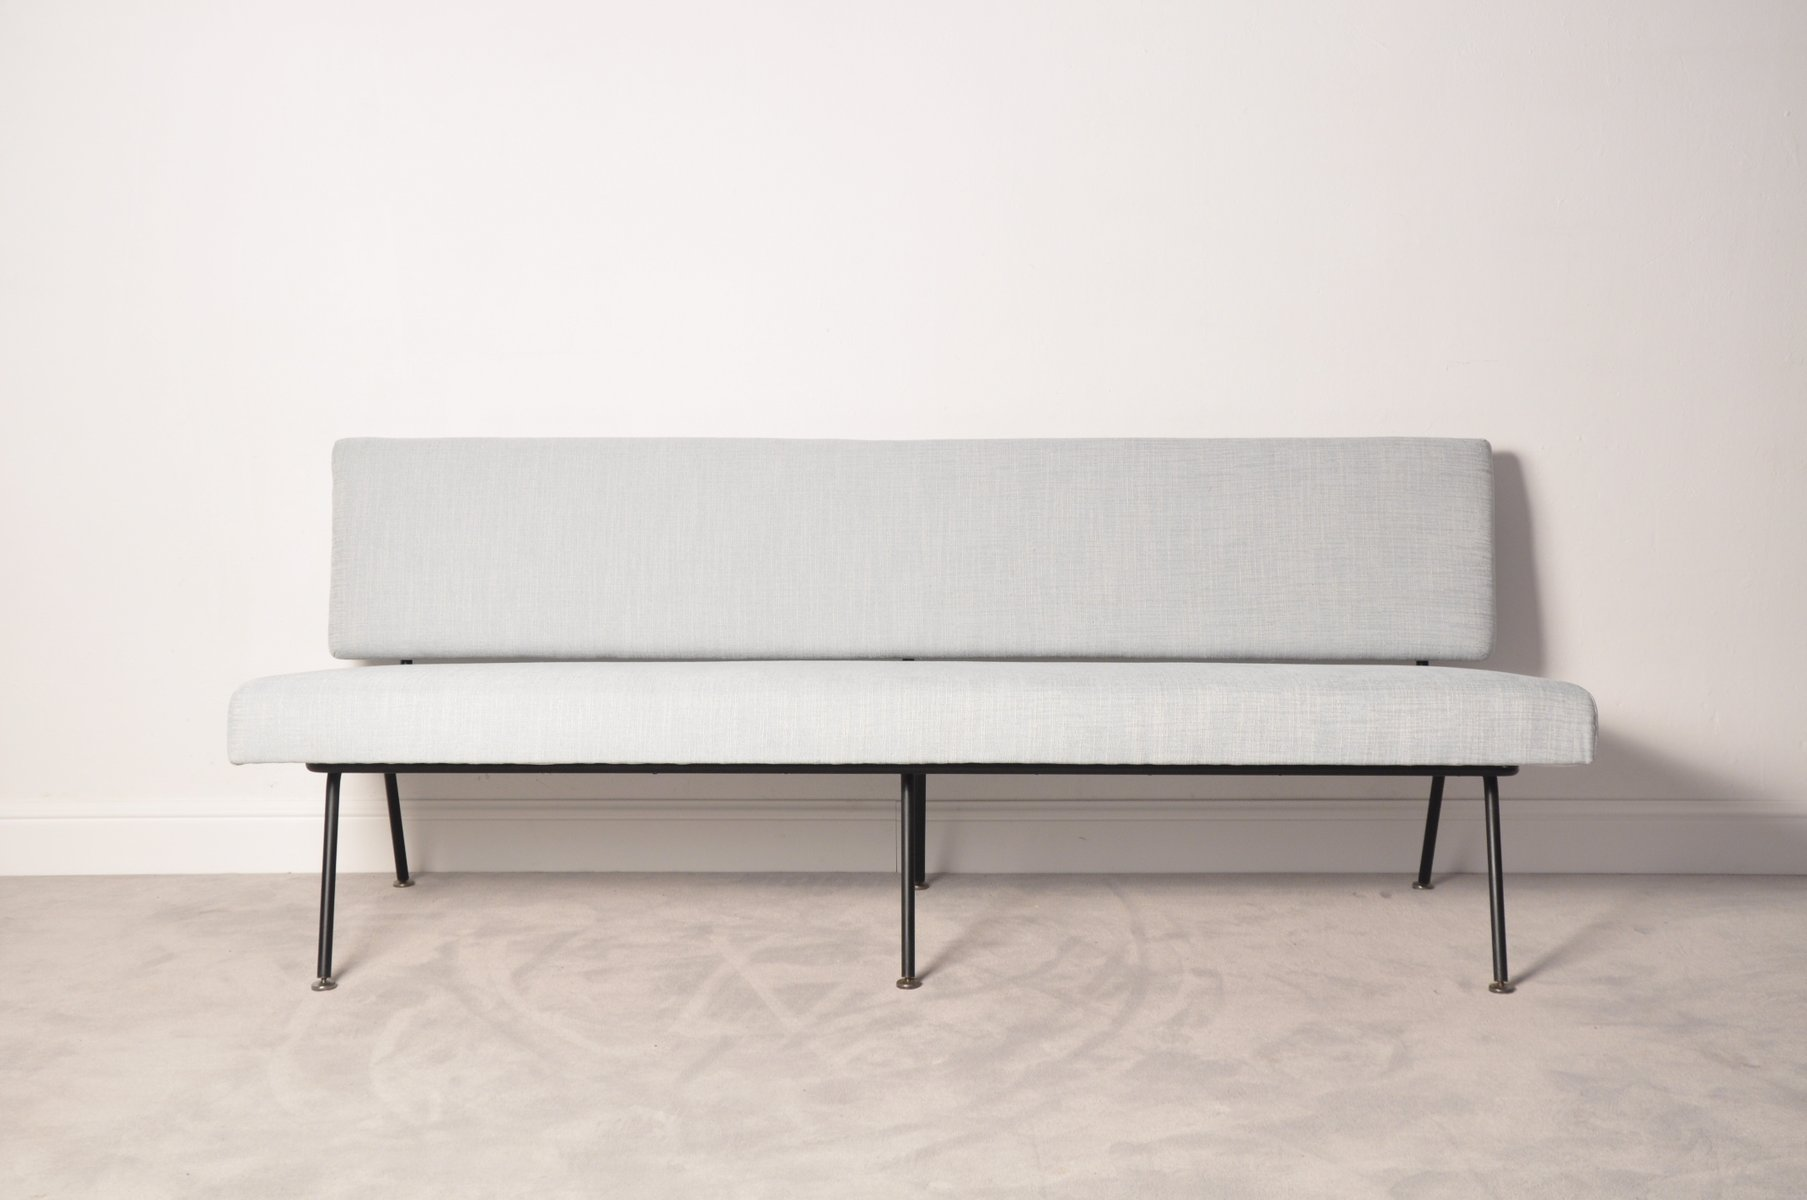 Model 32 sofa by florence knoll for knoll international 1965 for sale at pamono - Florence knoll sofa gebraucht ...